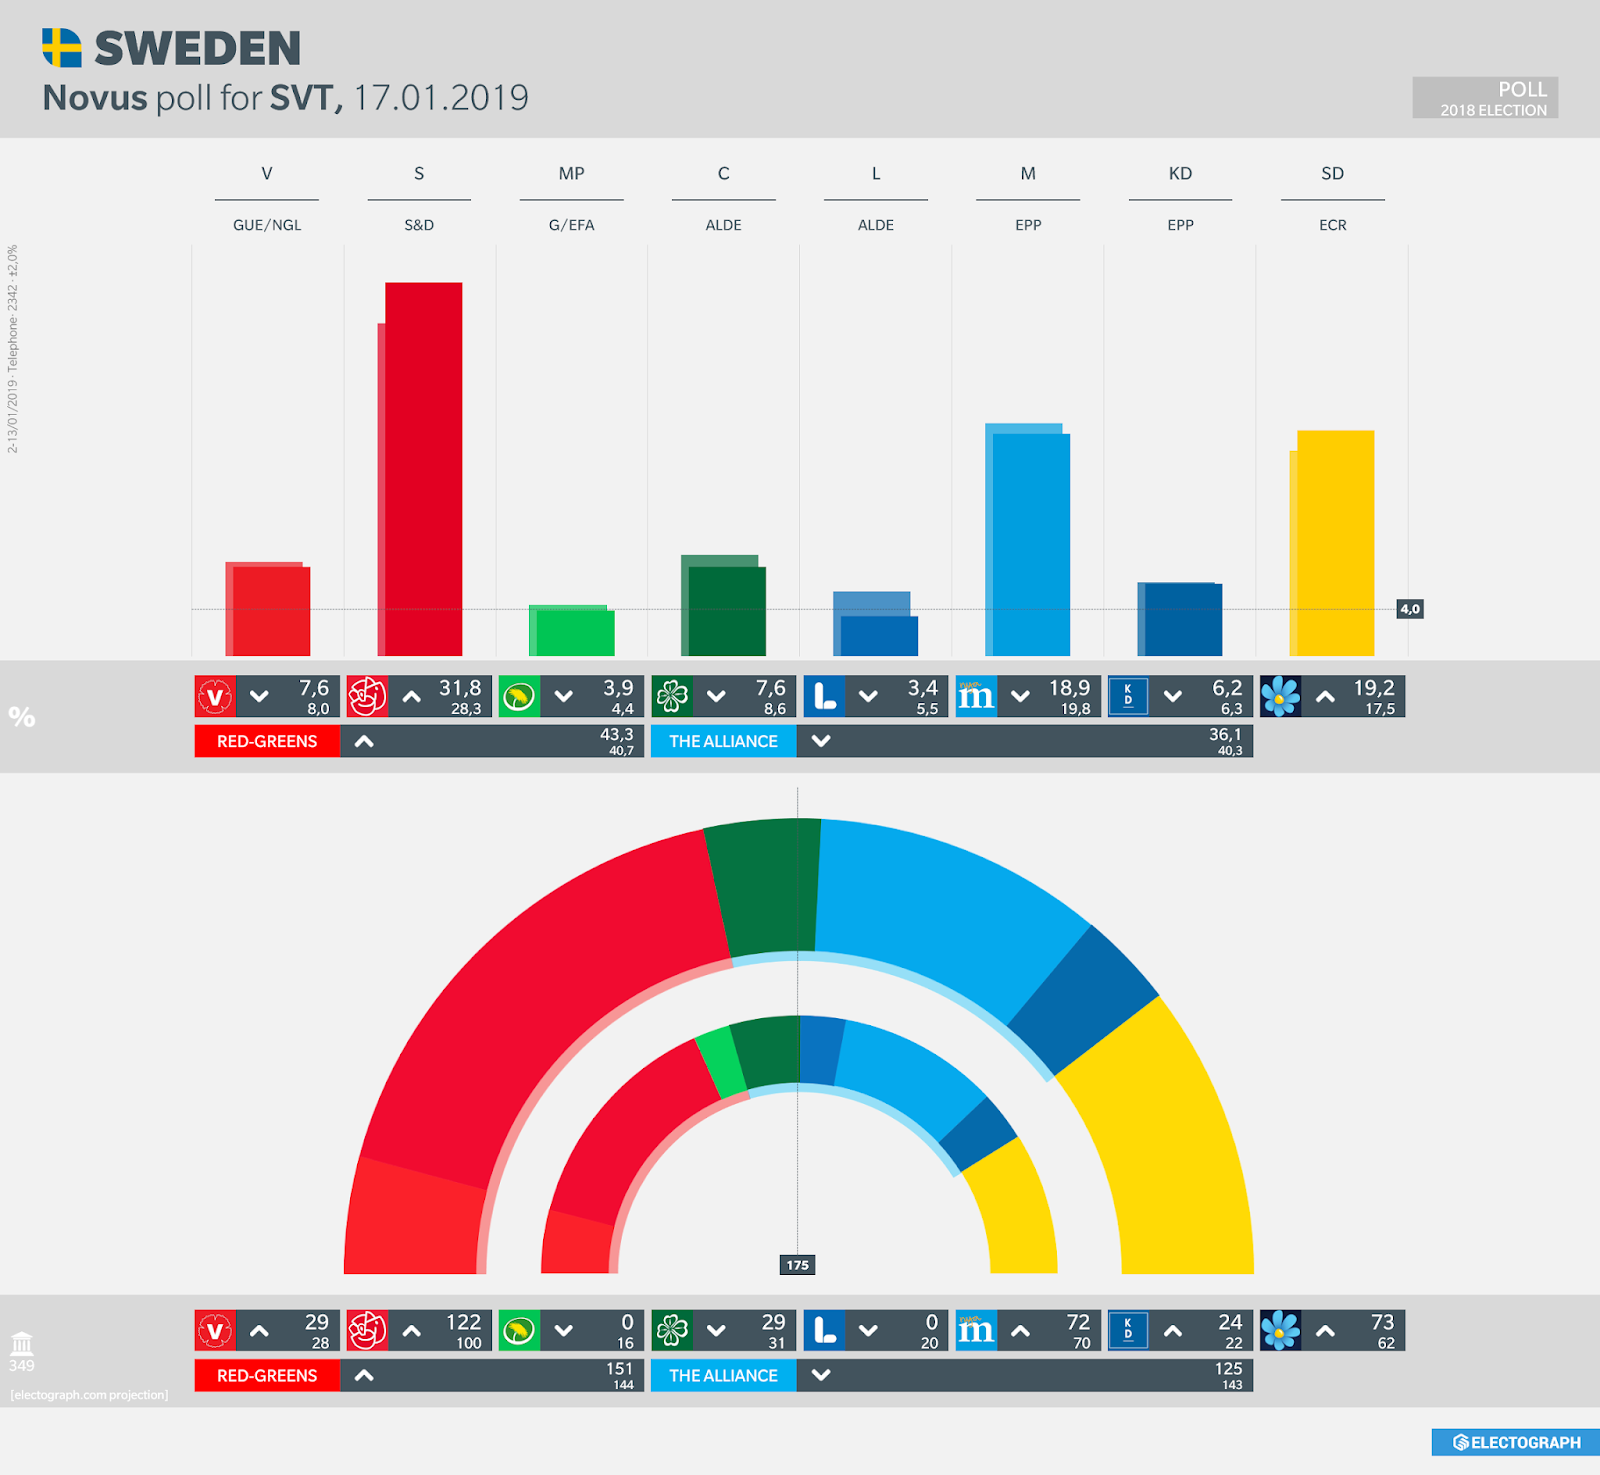 SWEDEN: Novus poll chart for SVT, 17 January 2019